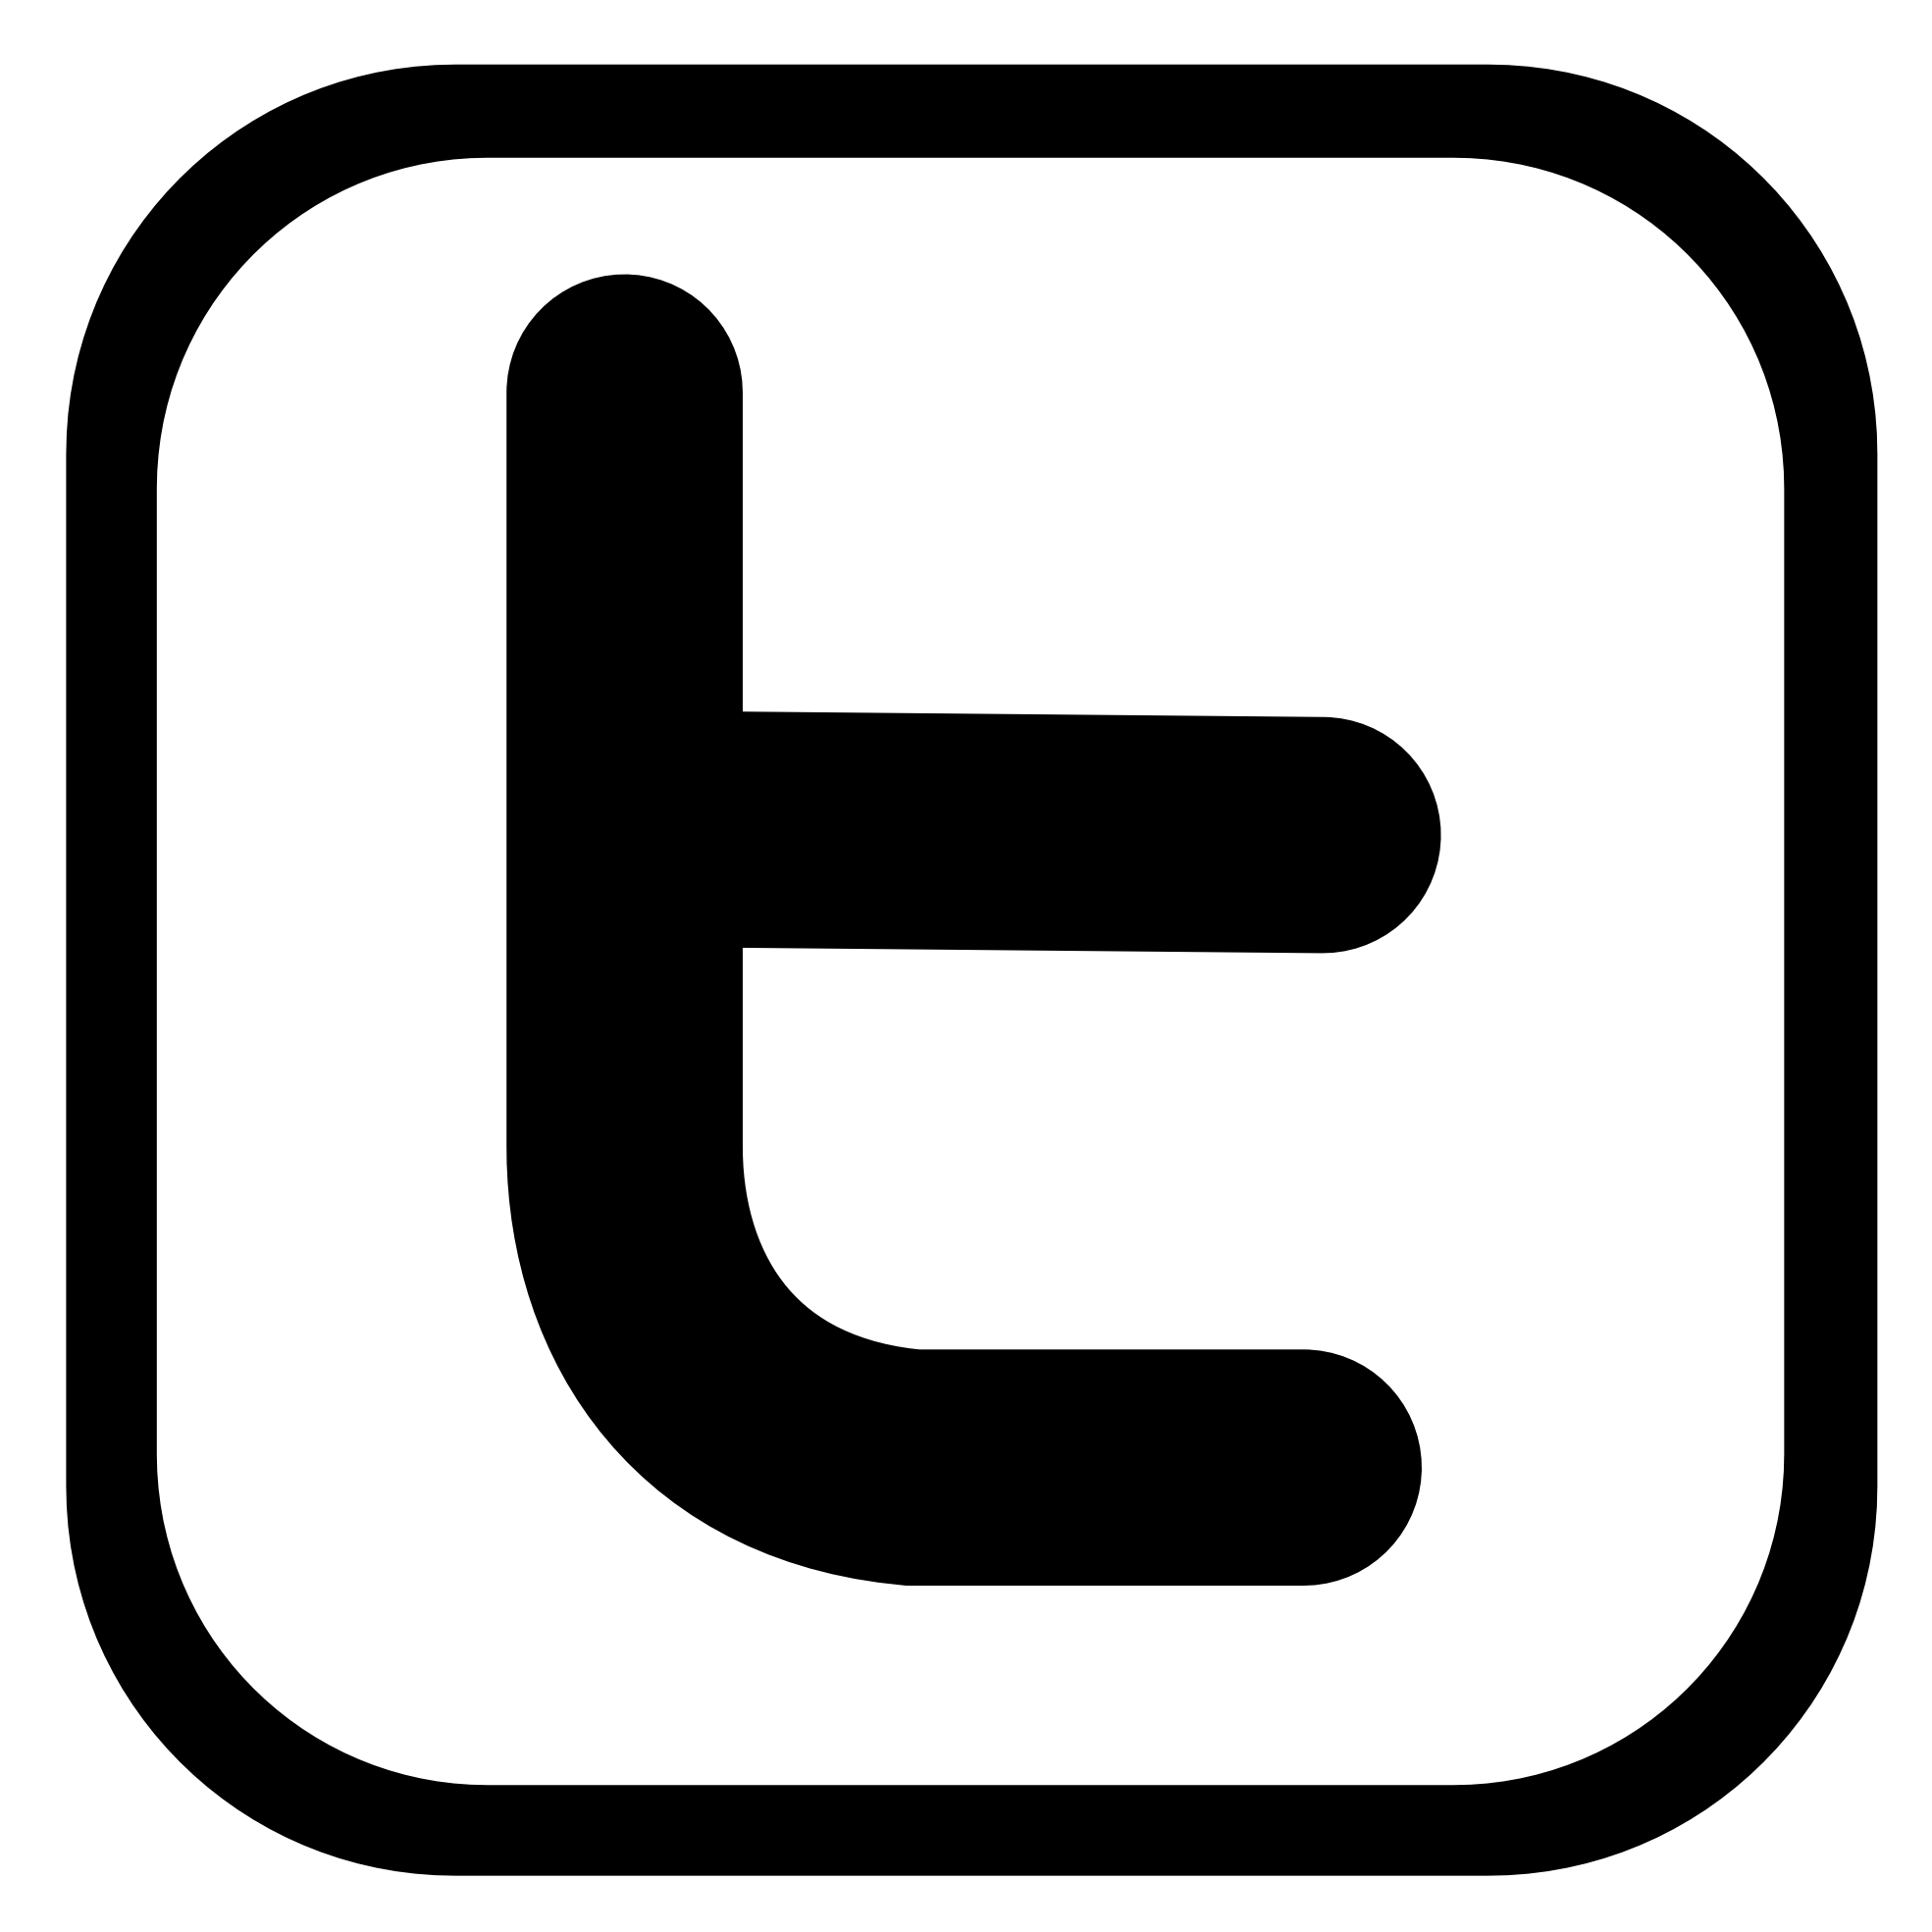 Black and White Twitter Icon